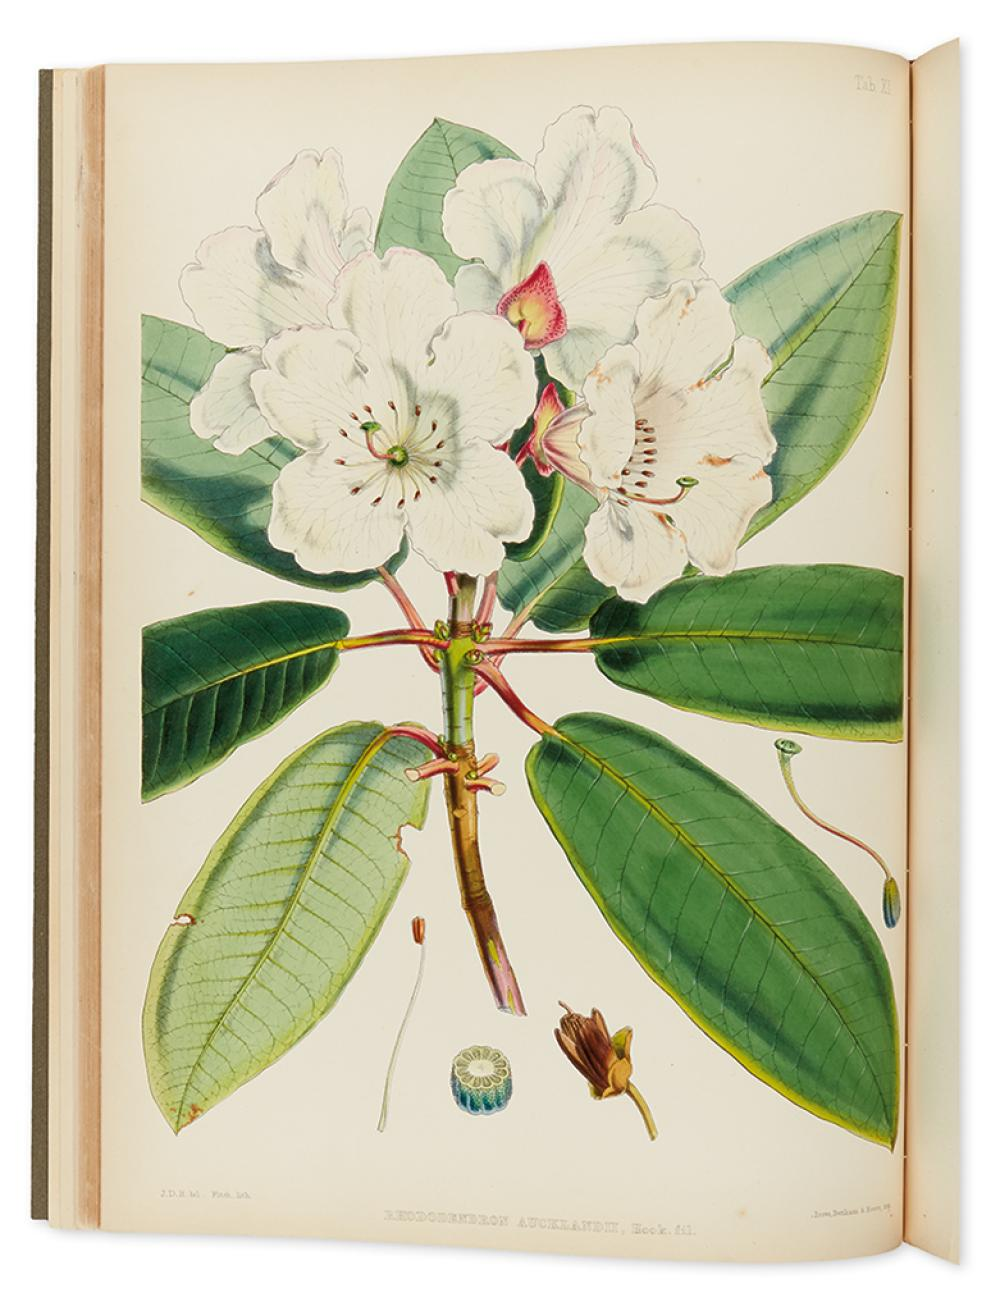 HOOKER, SIR JOSEPH DALTON. The Rhododendrons of Sikkim-Himalaya; Being an Account, Botanical and Geographical of the Rhododendrons